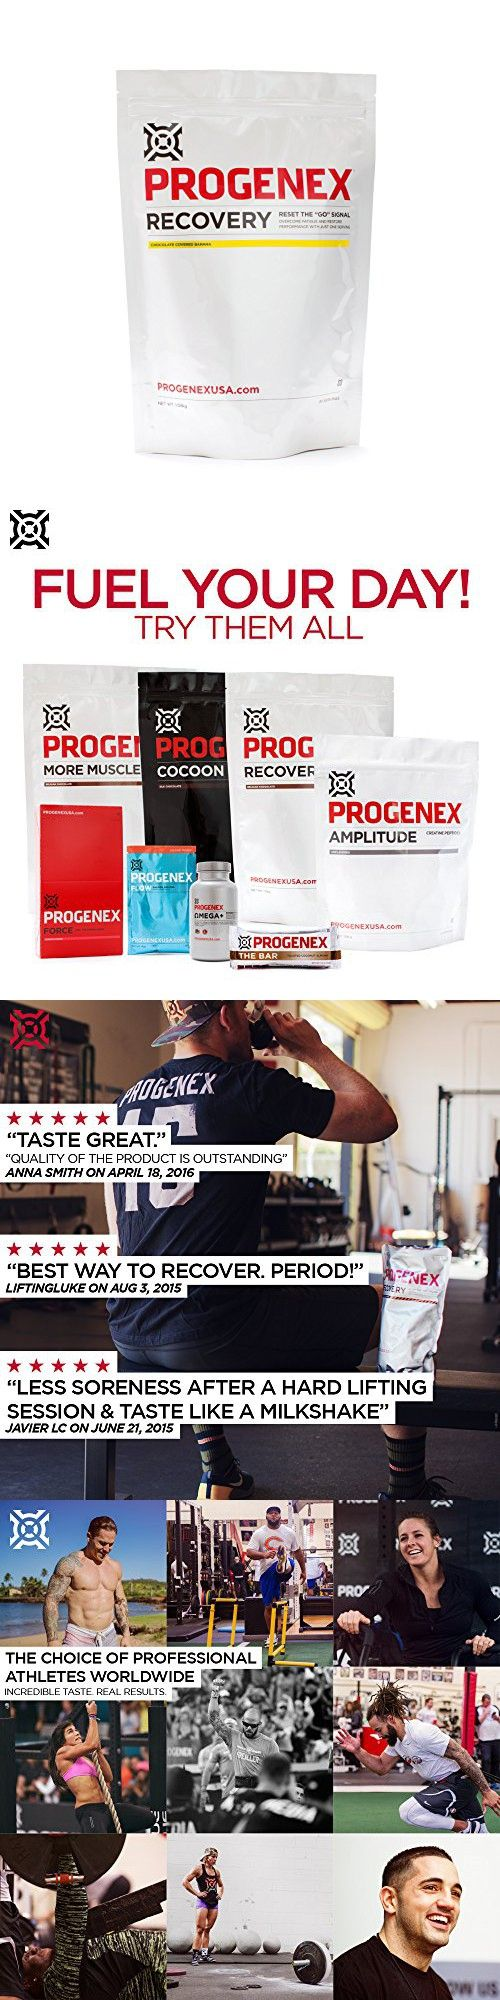 PROGENEX Recovery | Best Post Workout Supplement | Hydrolyzed Whey Protein Shake Drink Mix | Help Sore Muscles | Tastes Great | Incredible Results | 30 Servings, Chocolate Covered Banana